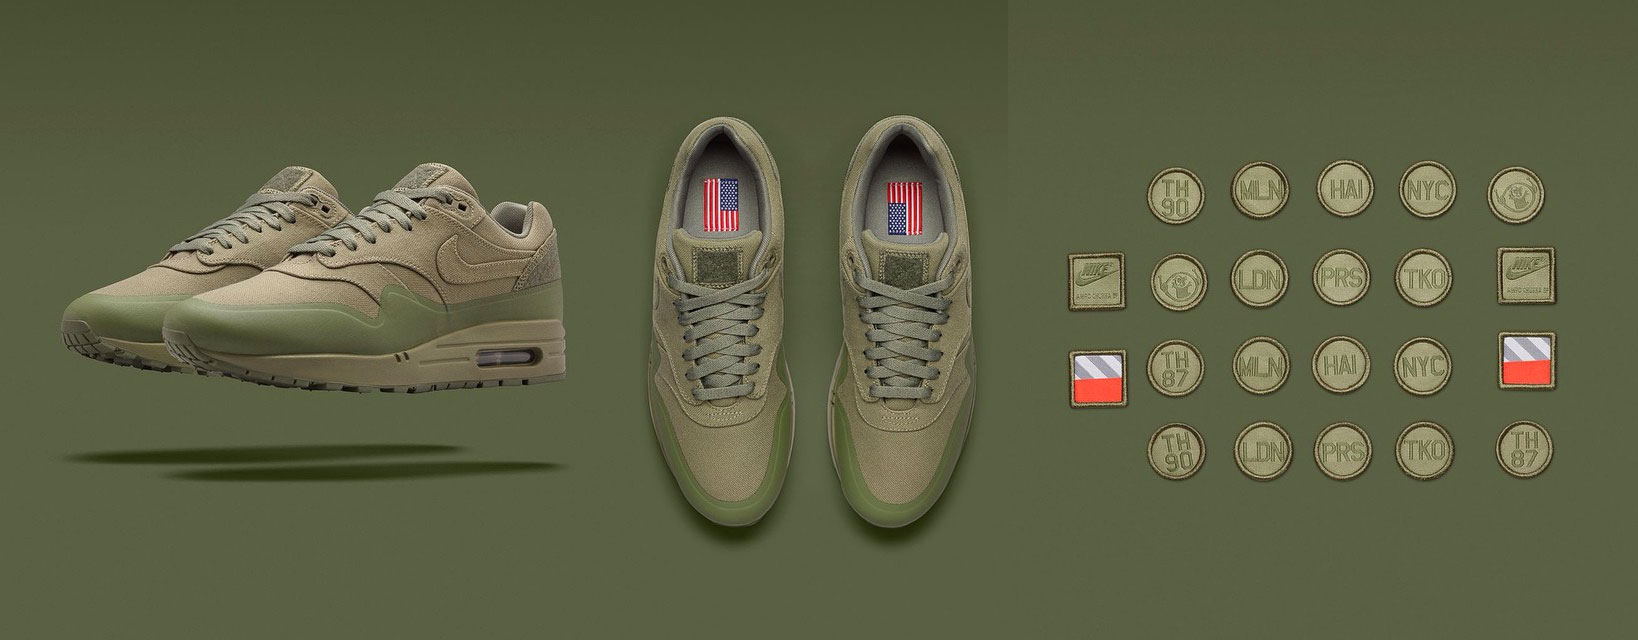 Nike-Military-Air-Max-1-Morale-Patch